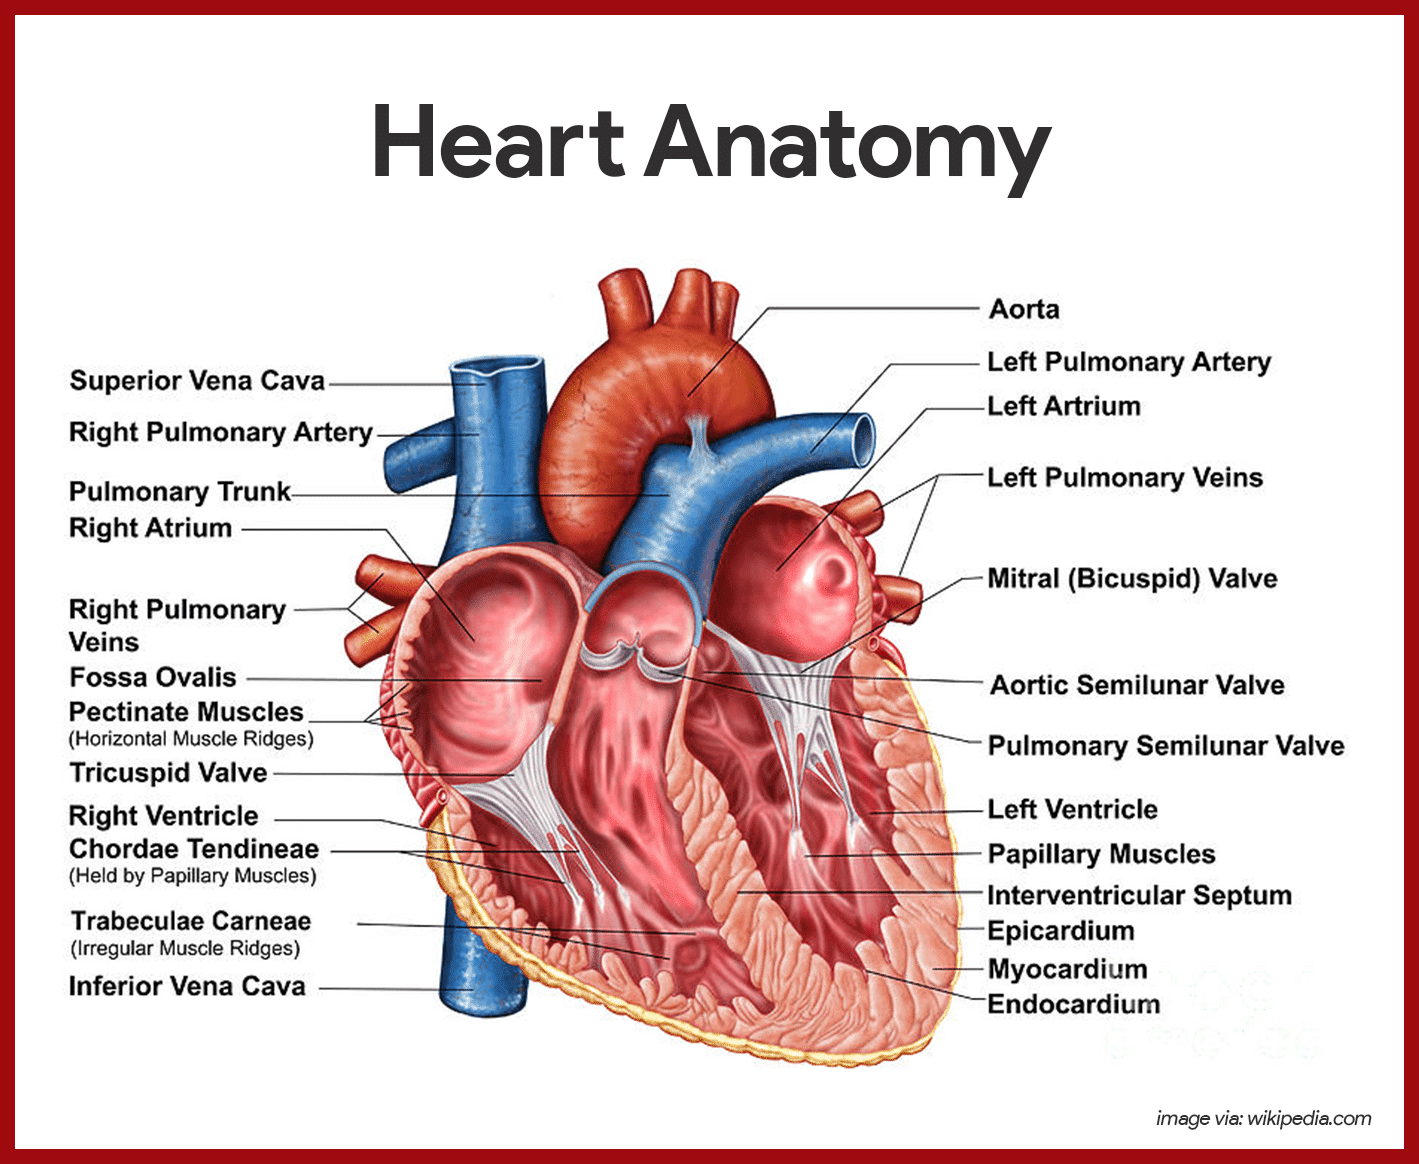 Anatomie Hart Cardiovascular System Anatomy And Physiology Human Body